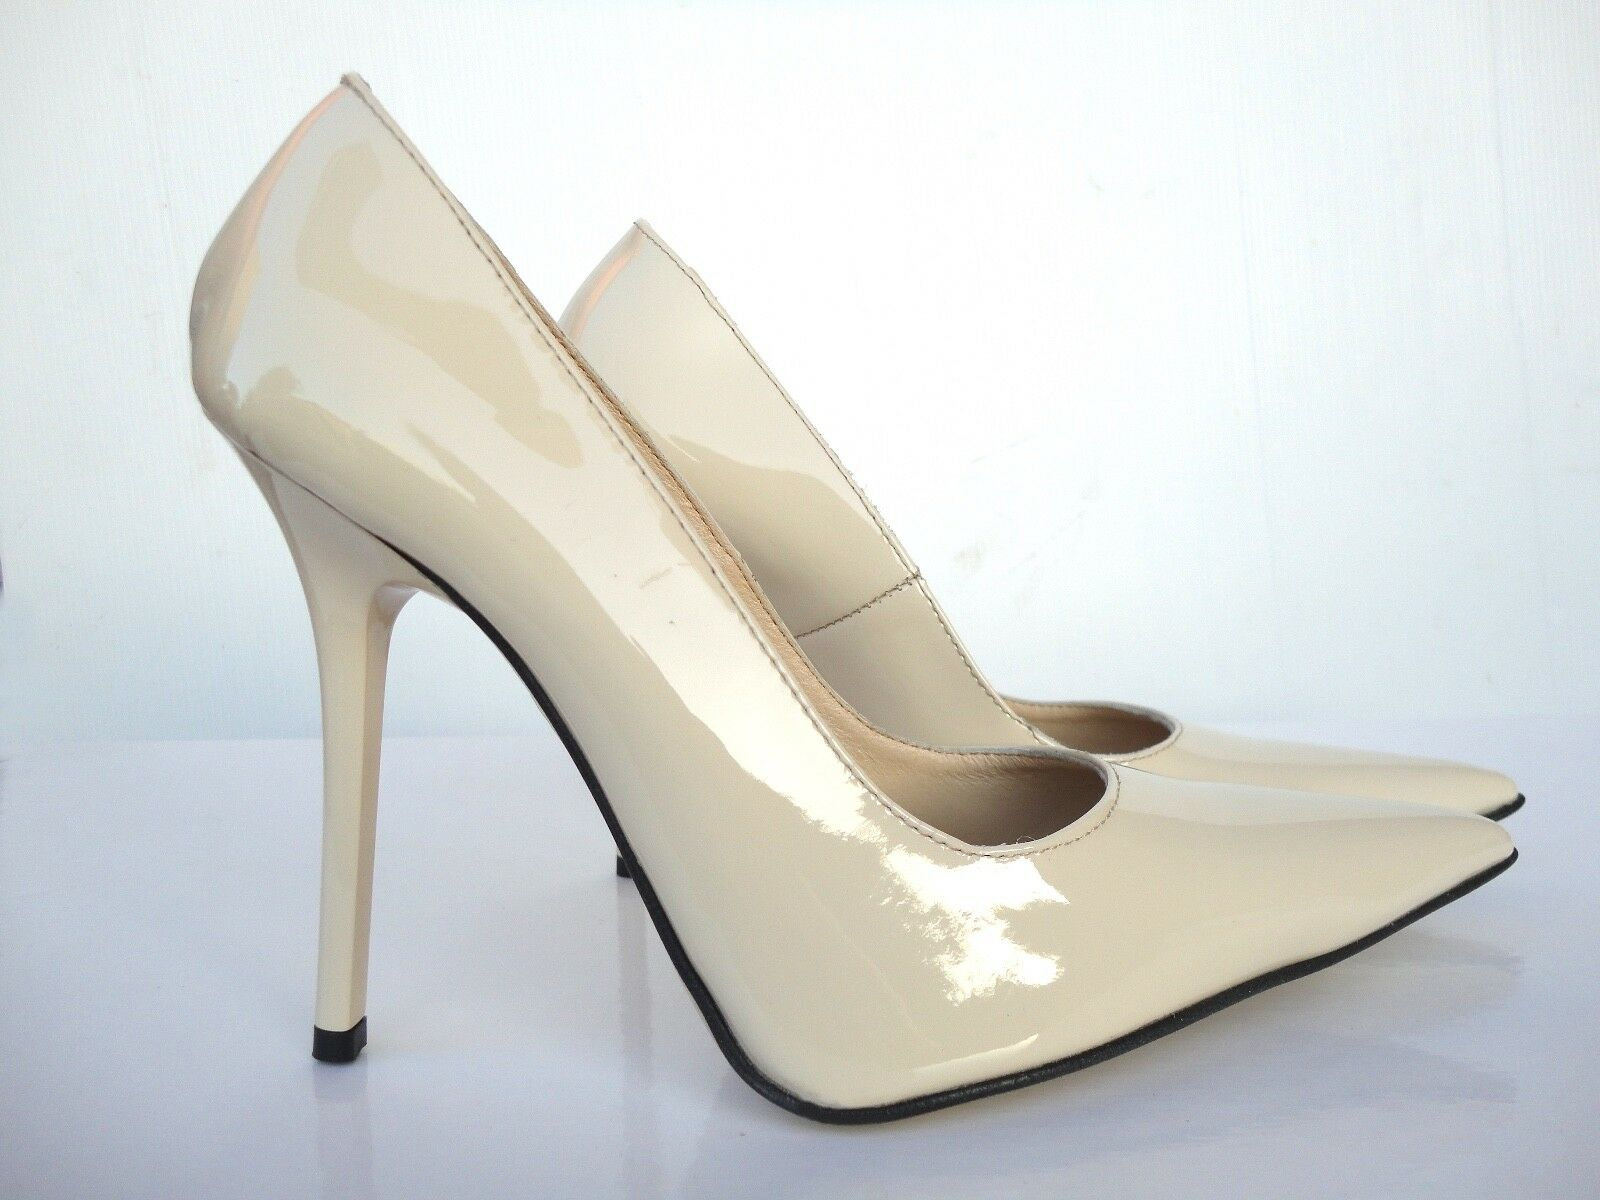 GIOHEL ITALY HIGH HEELS POINTY TOE PUMPS SCHUHE LEATHER DECOLTE NUDE BEIGE 36